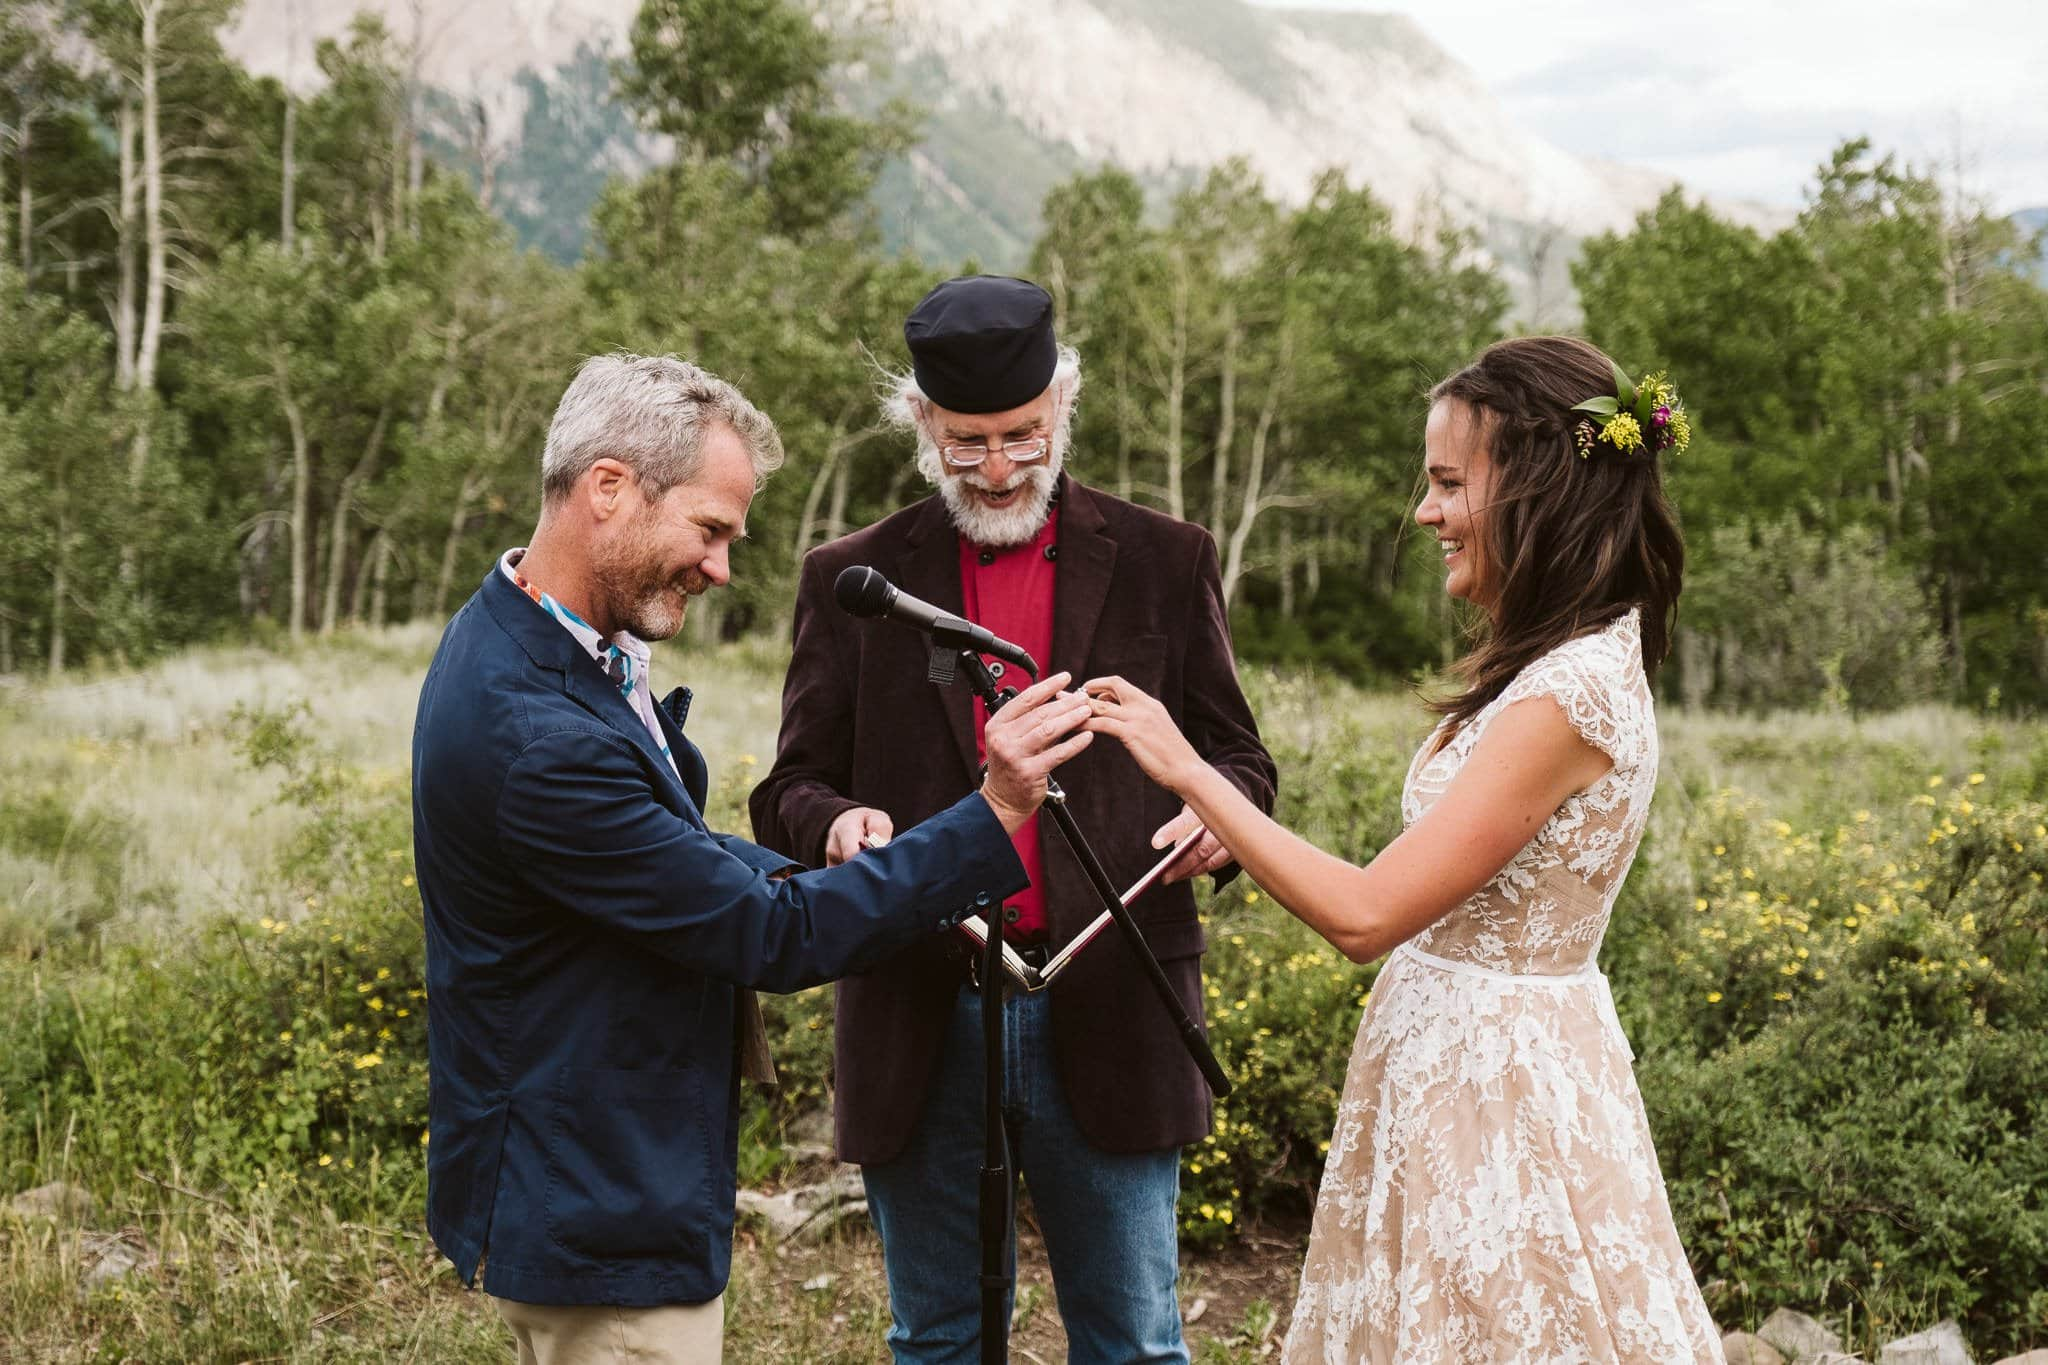 Woods Walk wedding ceremony in Crested Butte, Colorado wedding photographer